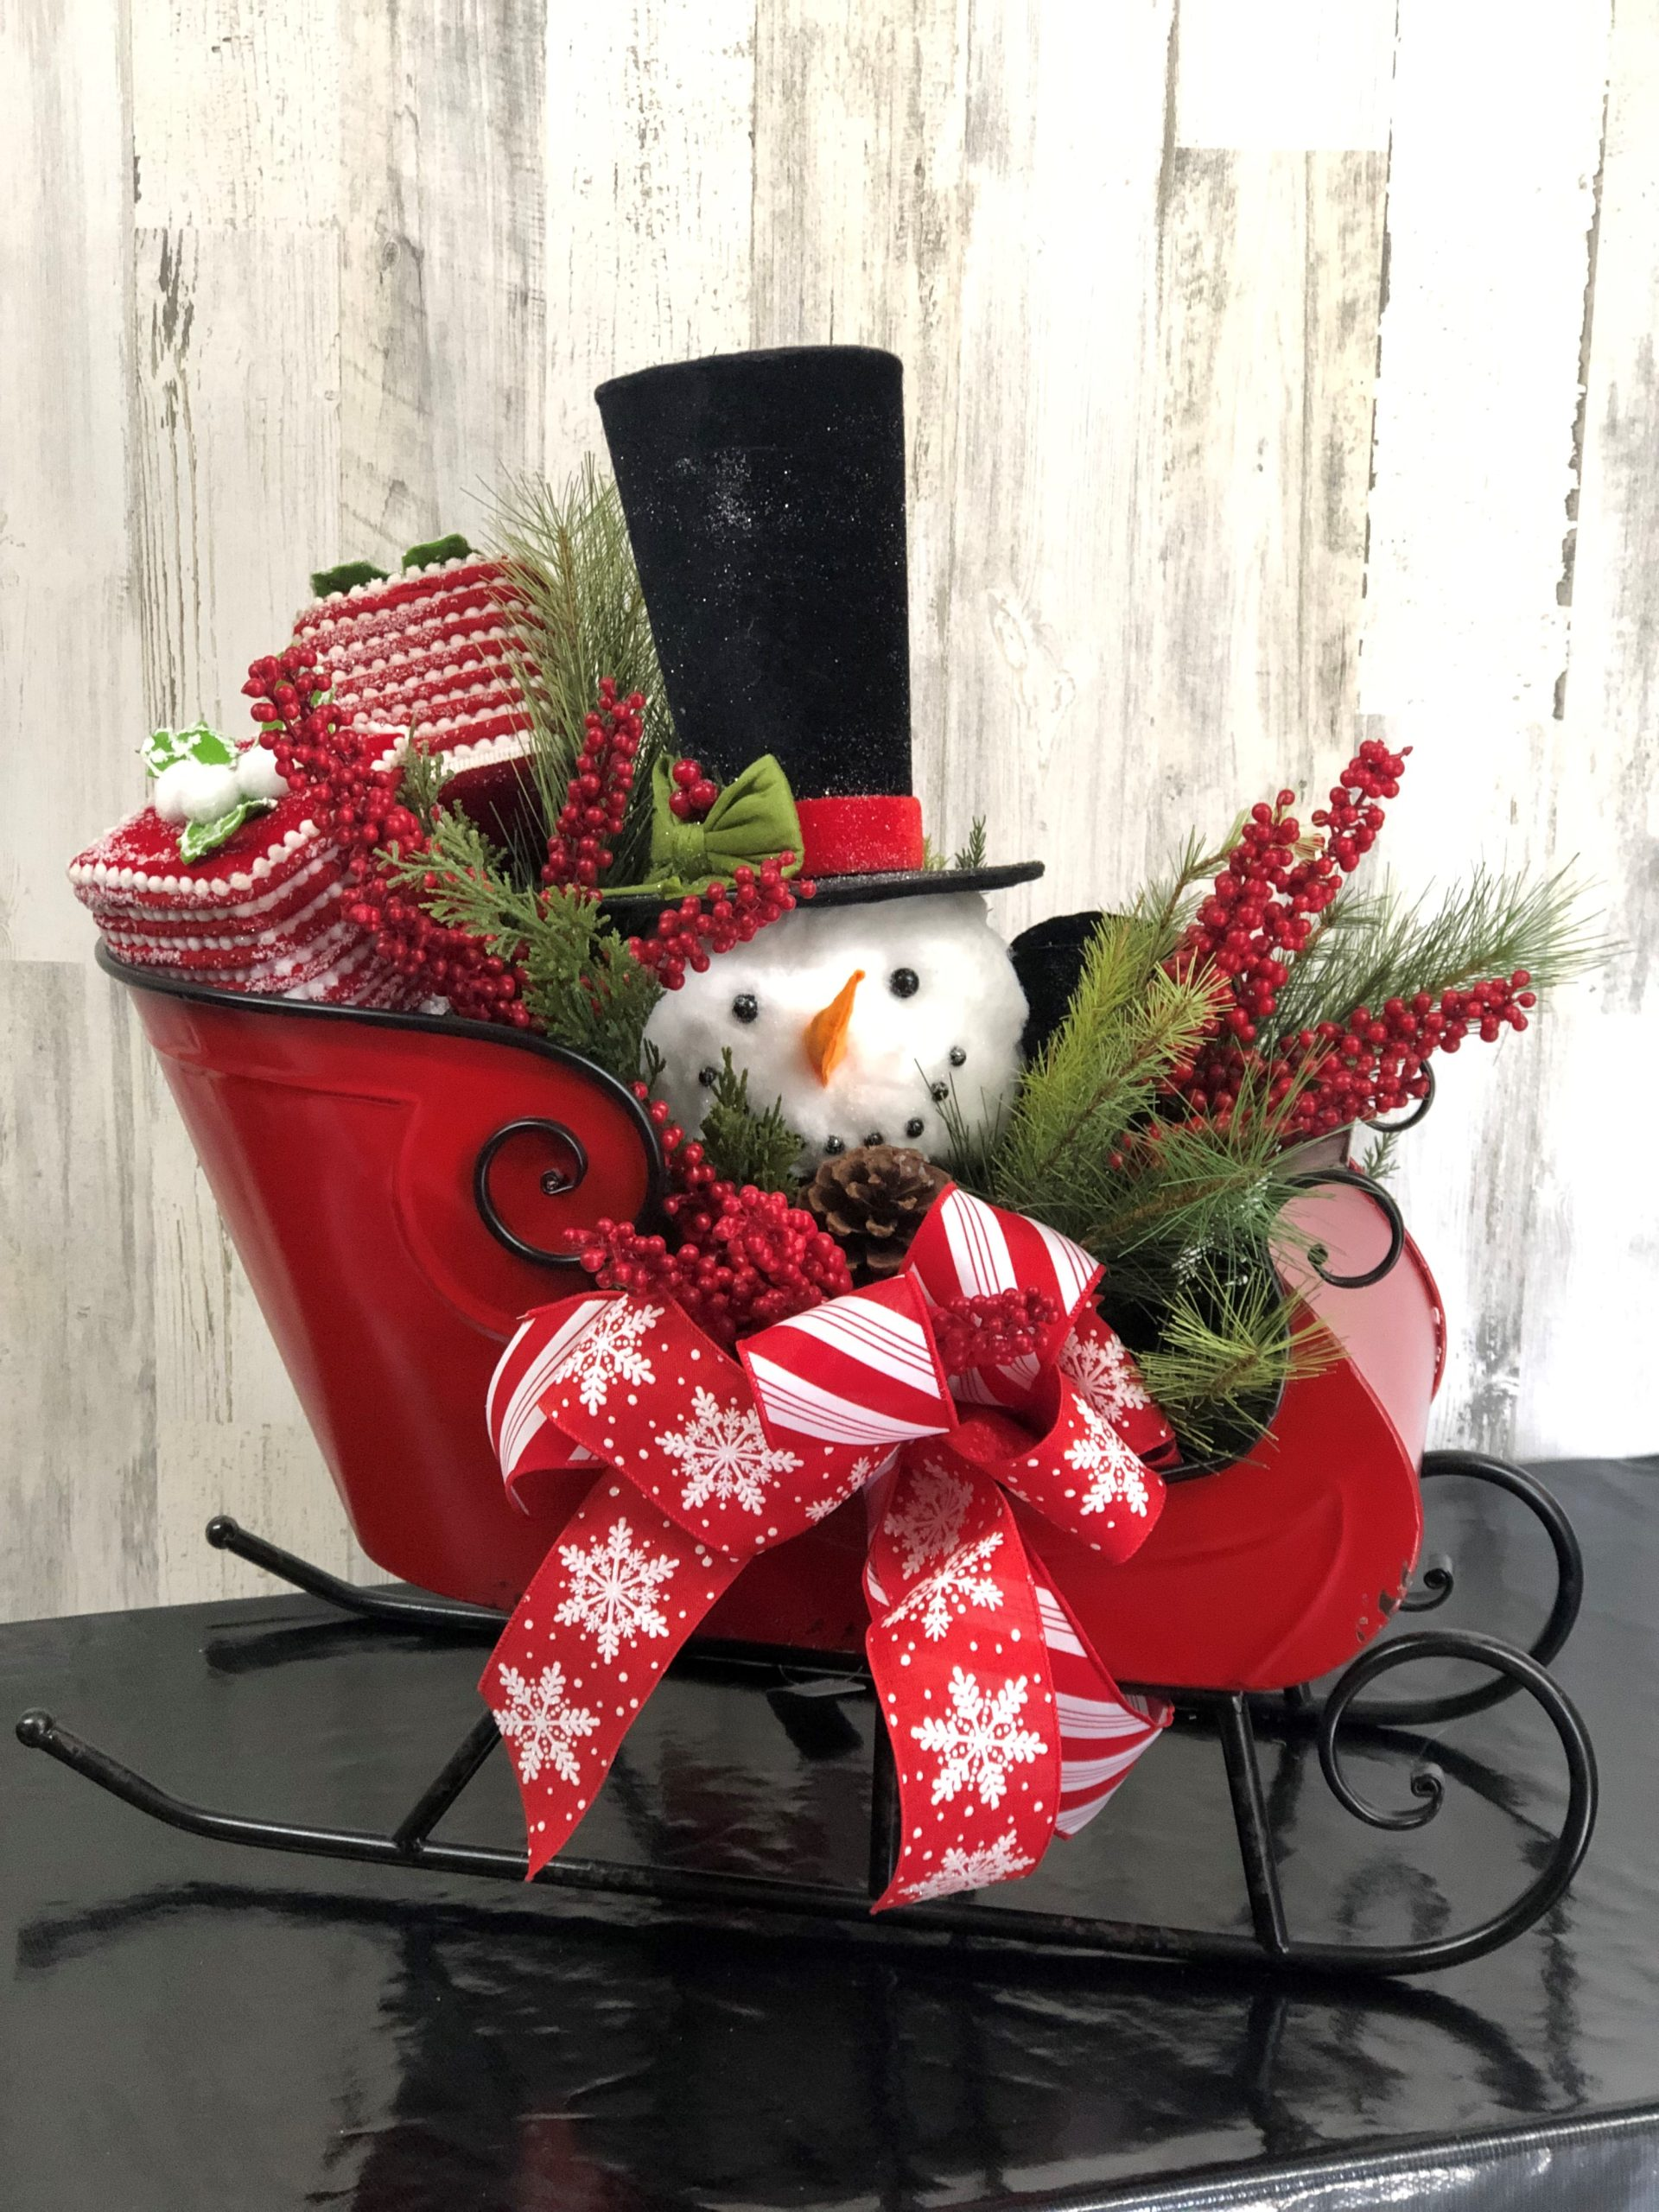 Red sleigh with top hat snowman